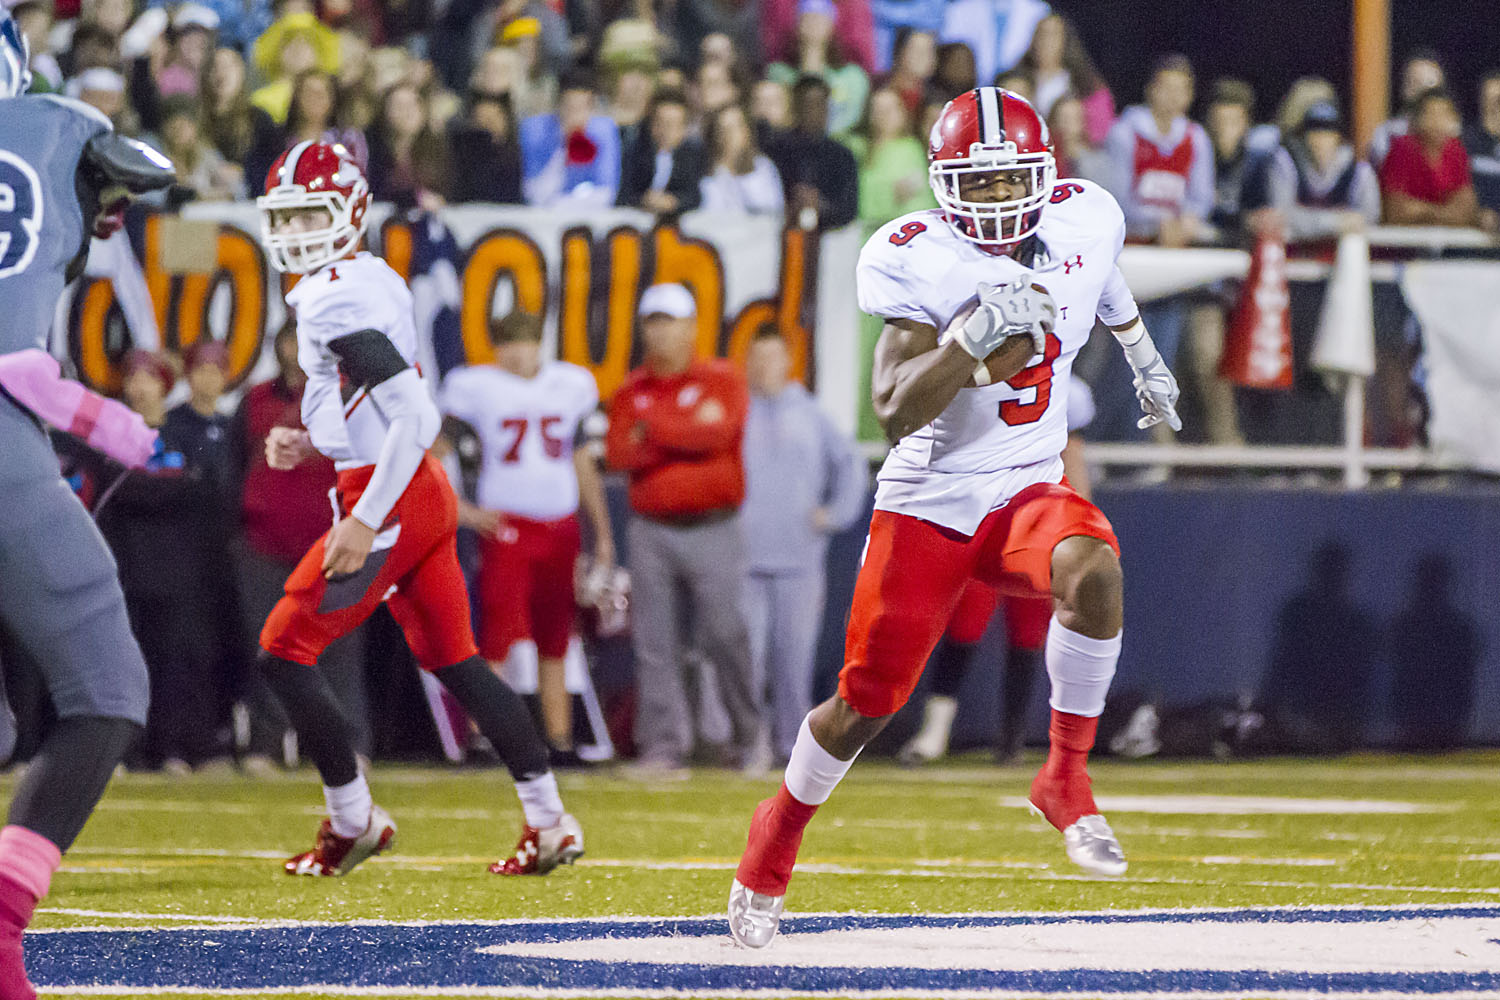 Hewitt-Trussville's Noah Igbinoghene invited to 'virtually' attend 2020 NFL Draft